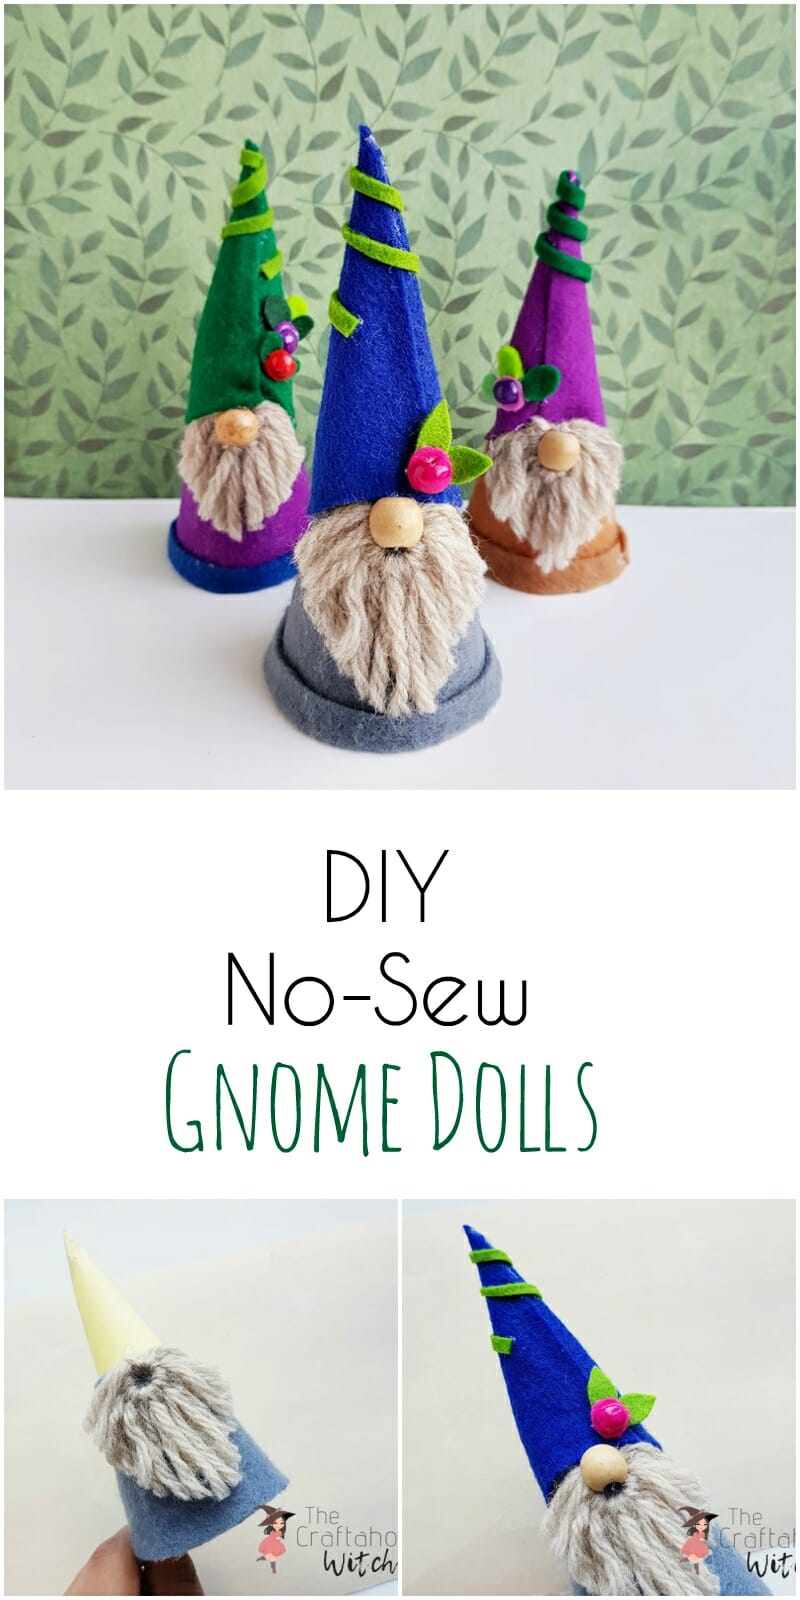 DIY No-Sew Gnome Dolls